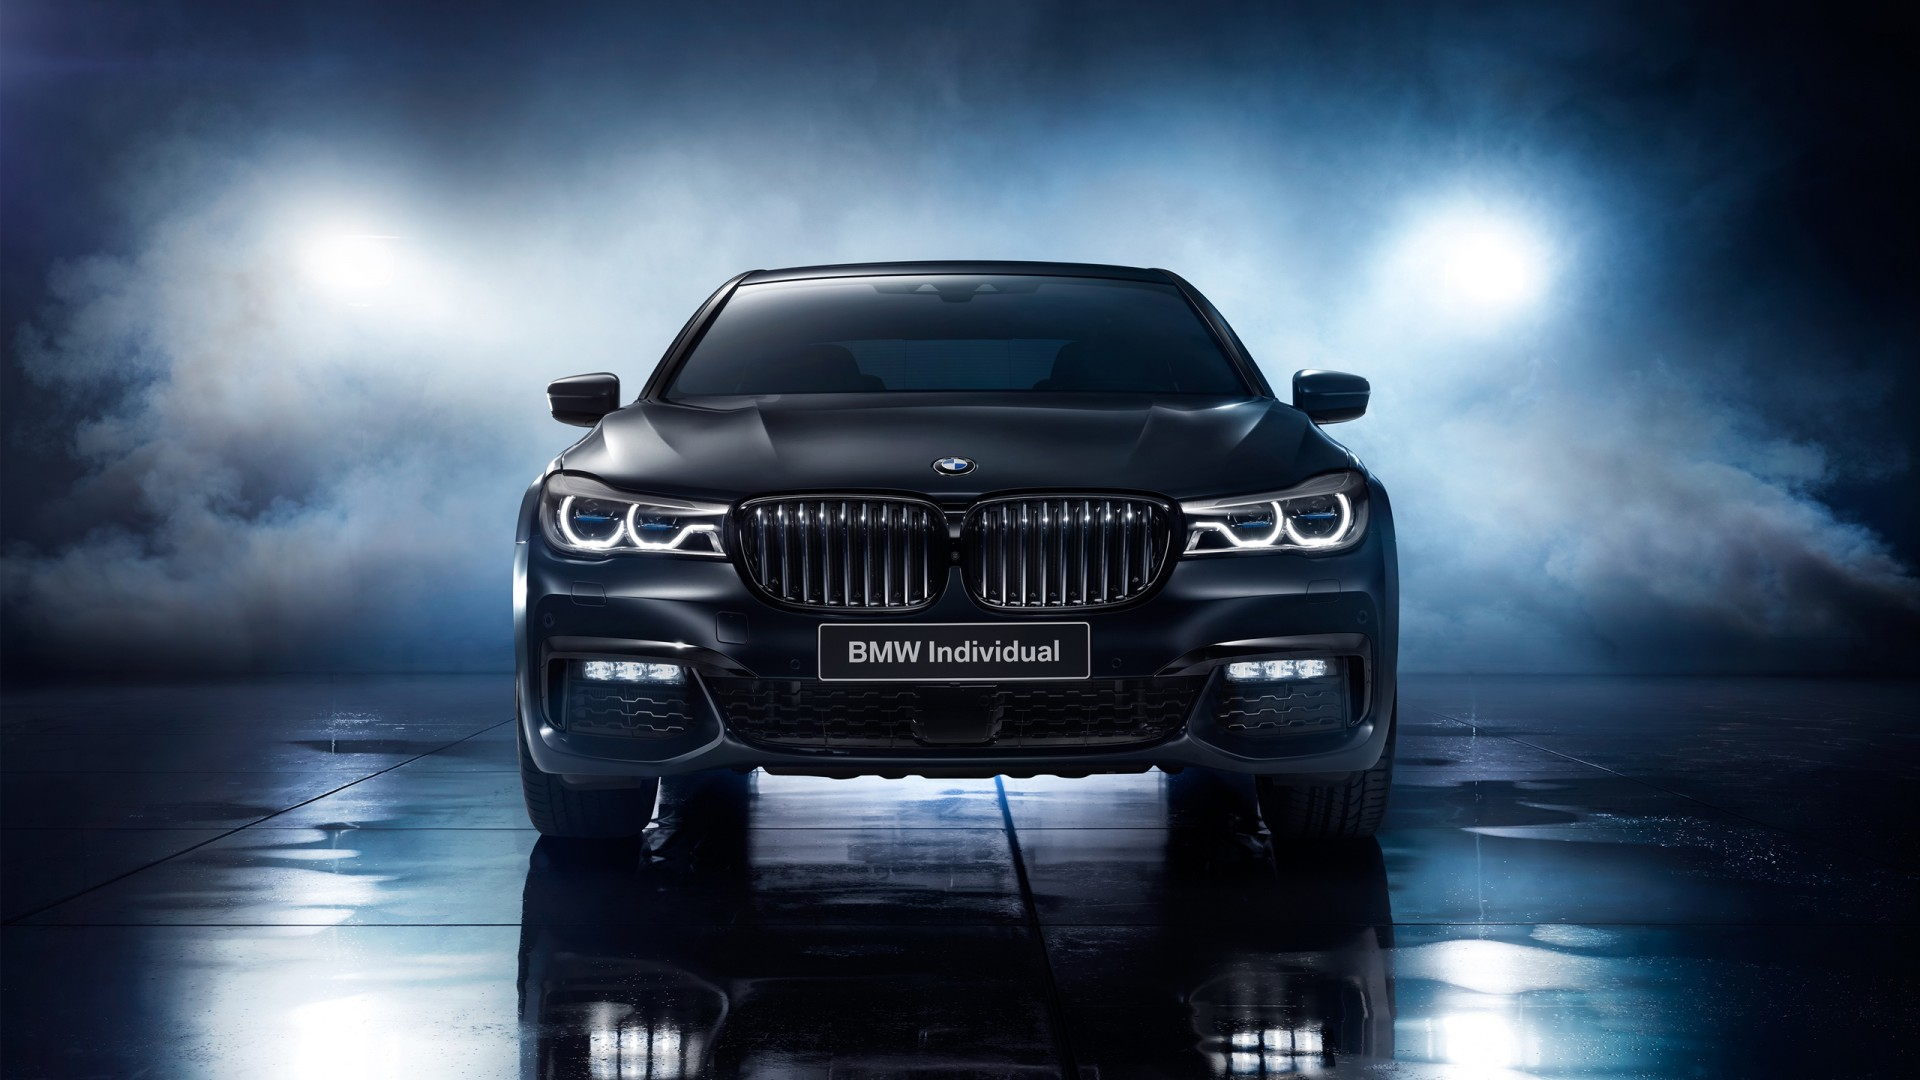 10 Bmw Black Colour Car Wallpapers Hd For Desktop